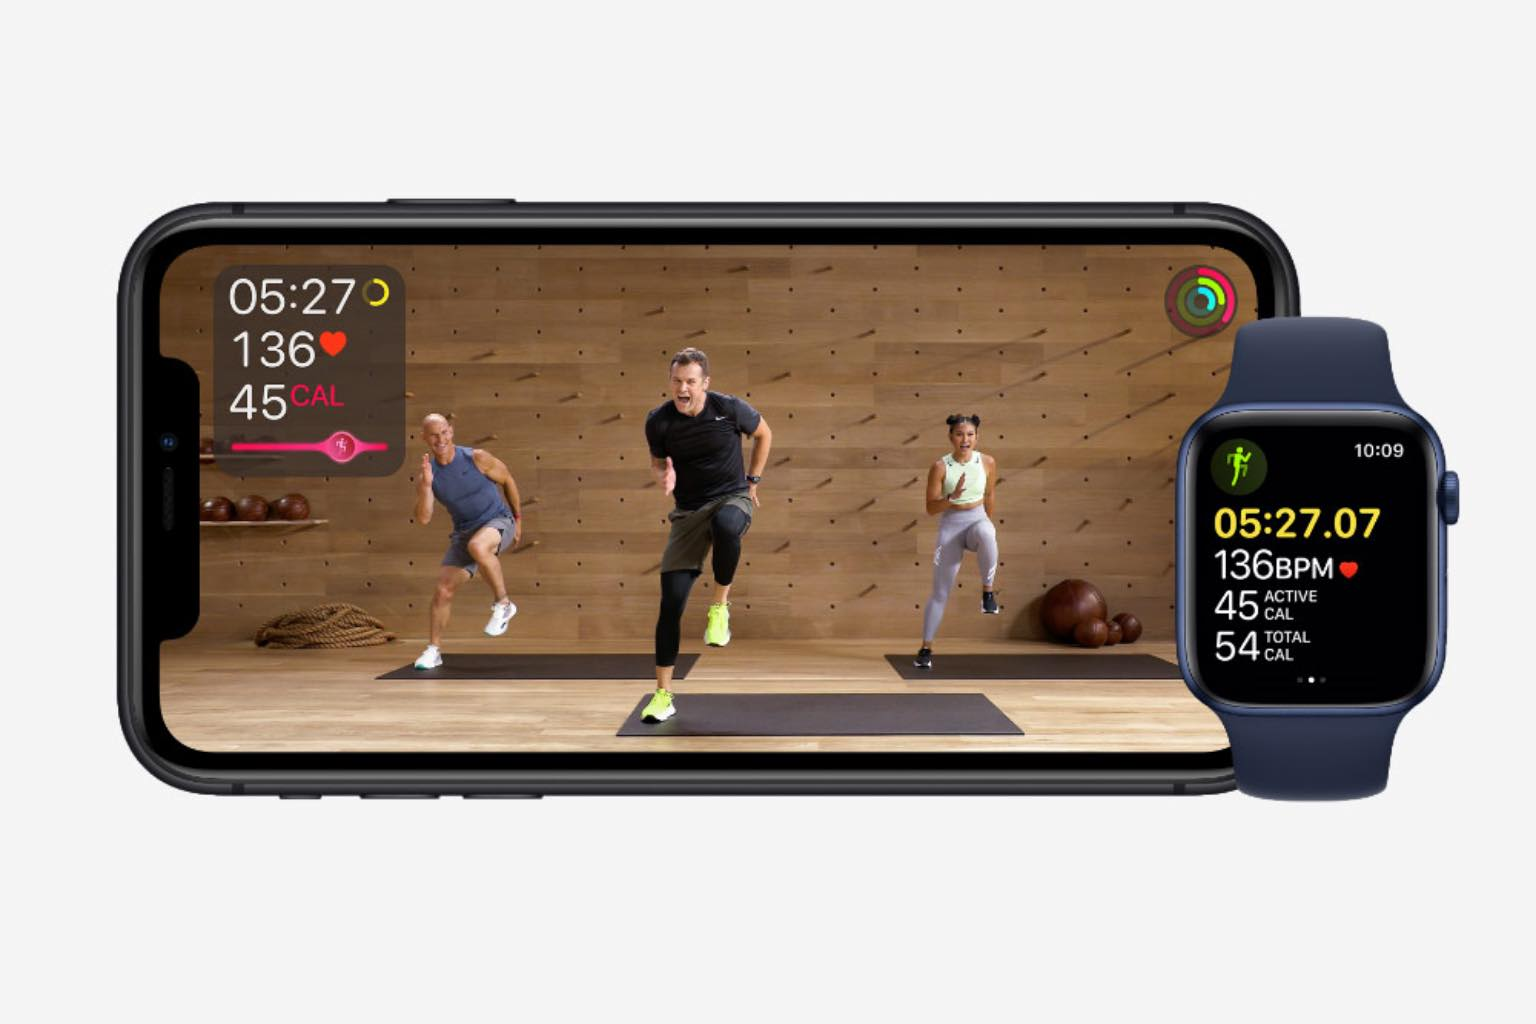 iPhone screen and Apple Watch showing AppleFitness+ video workout